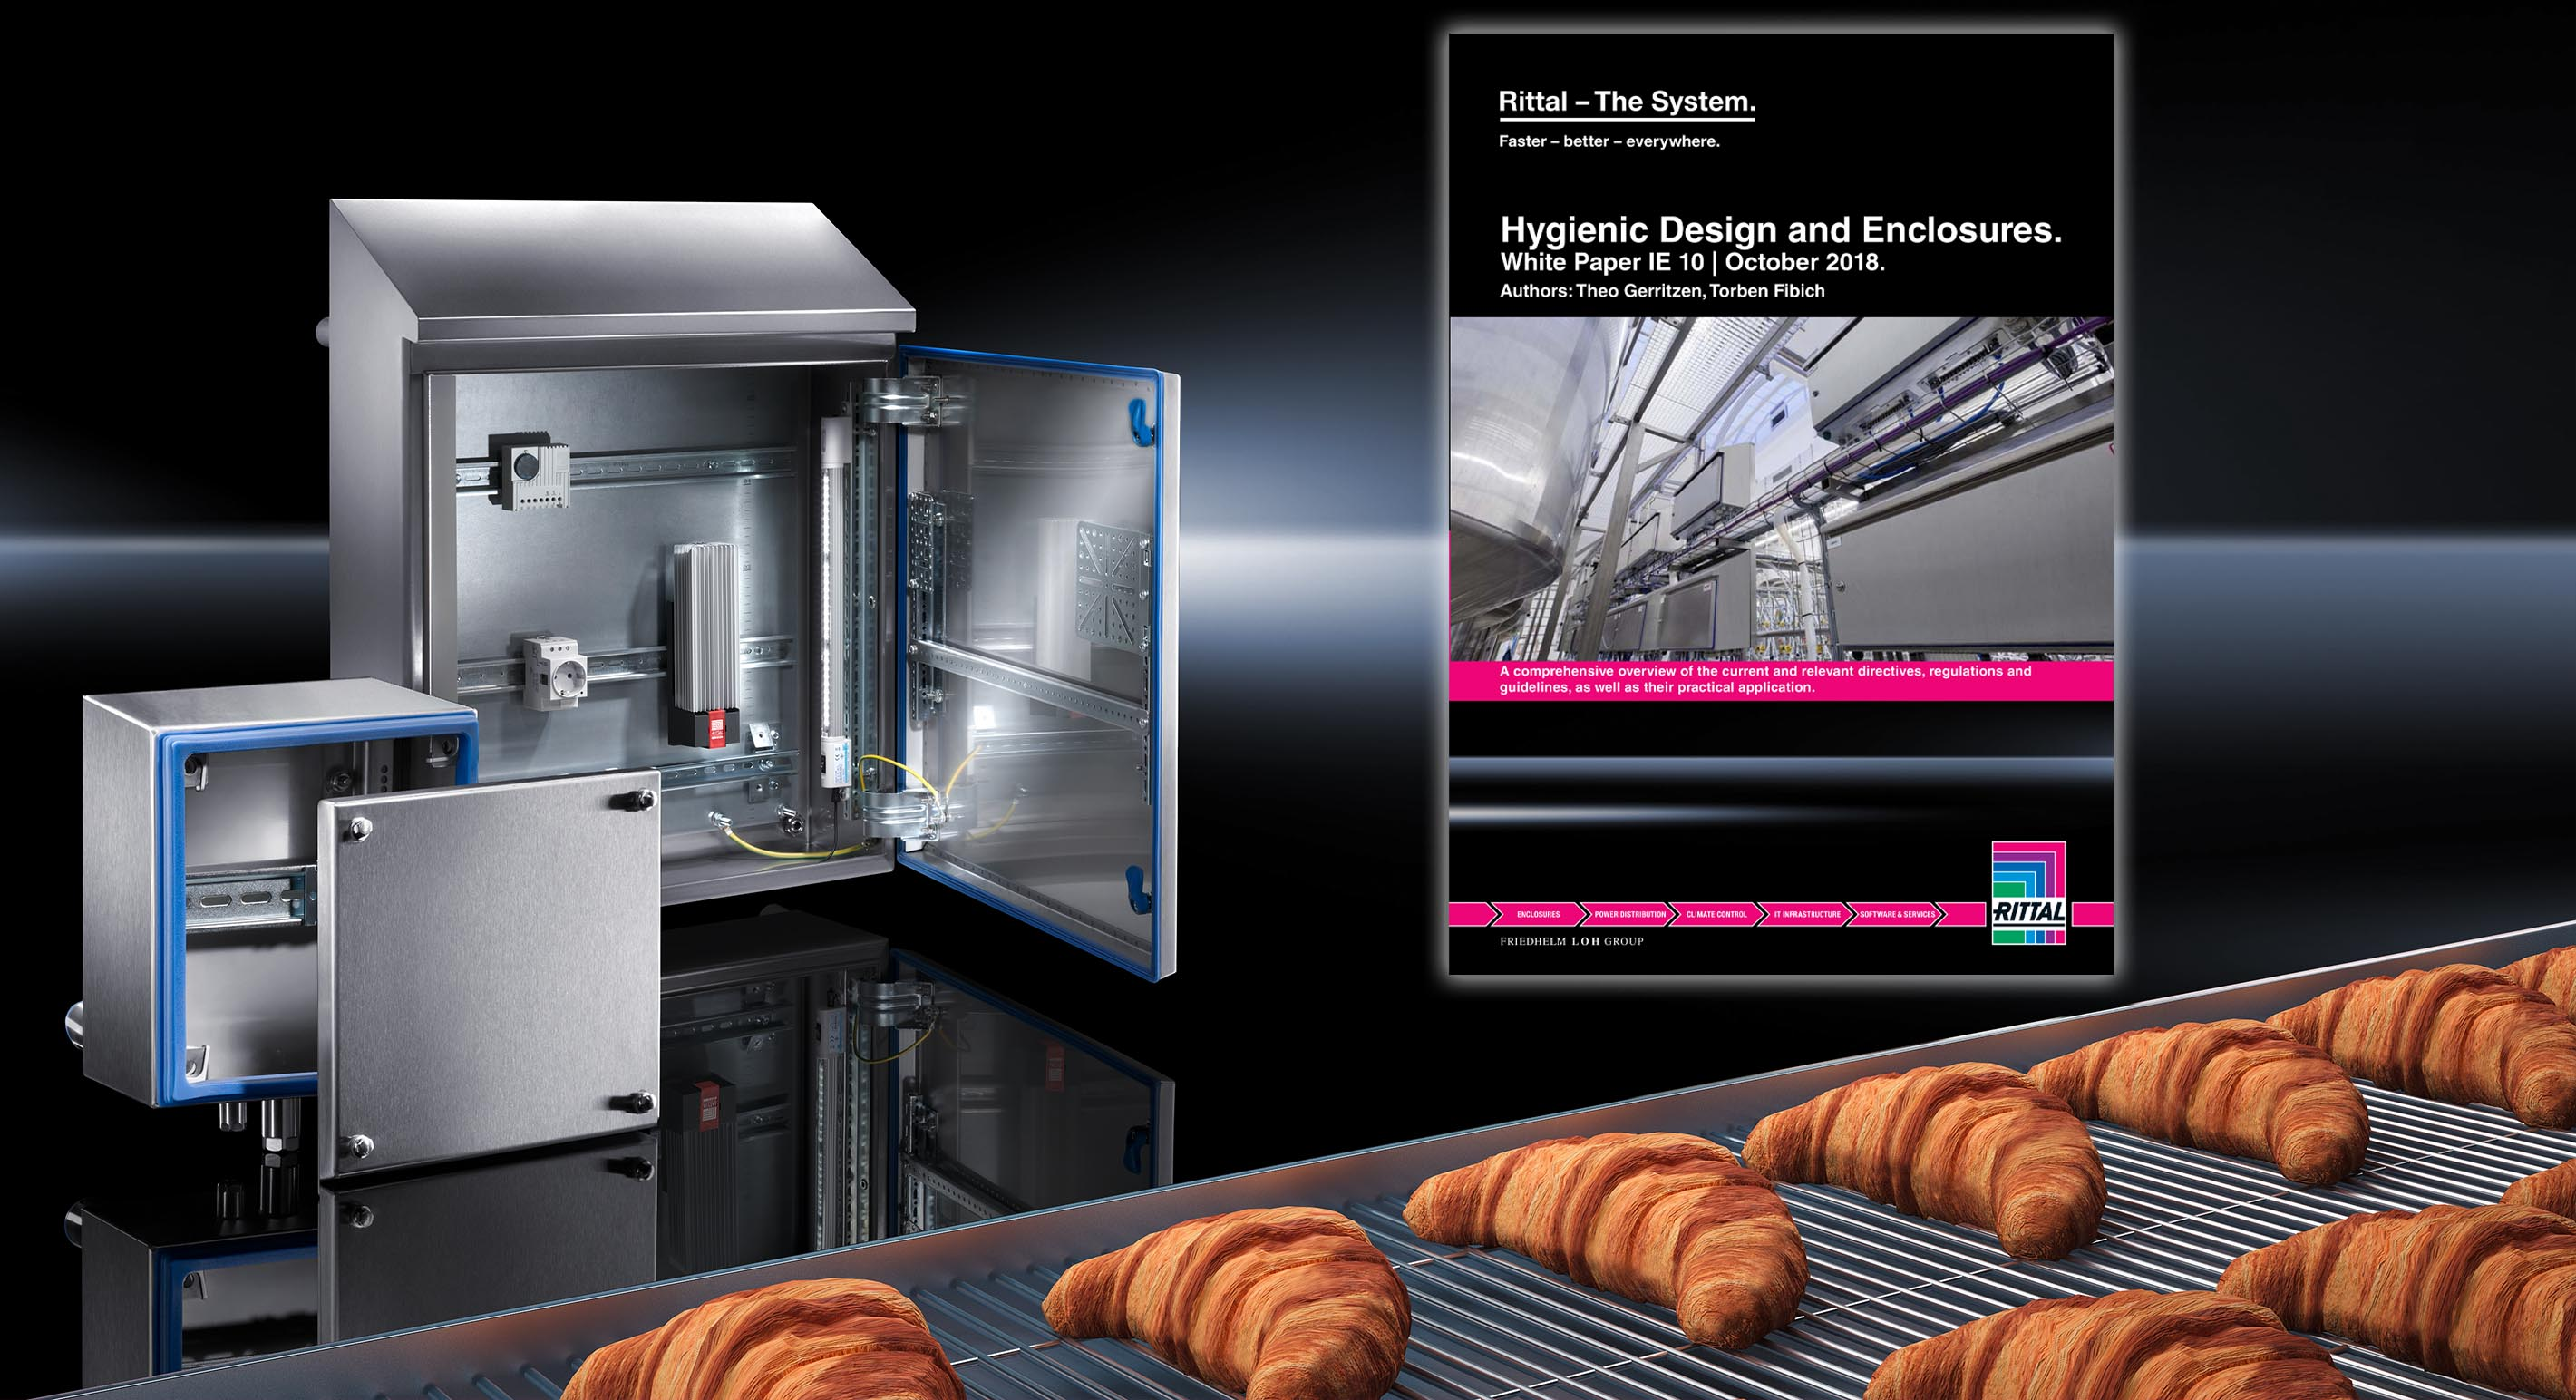 Rittal HD ecnclosure white paper - for the food & bev industry